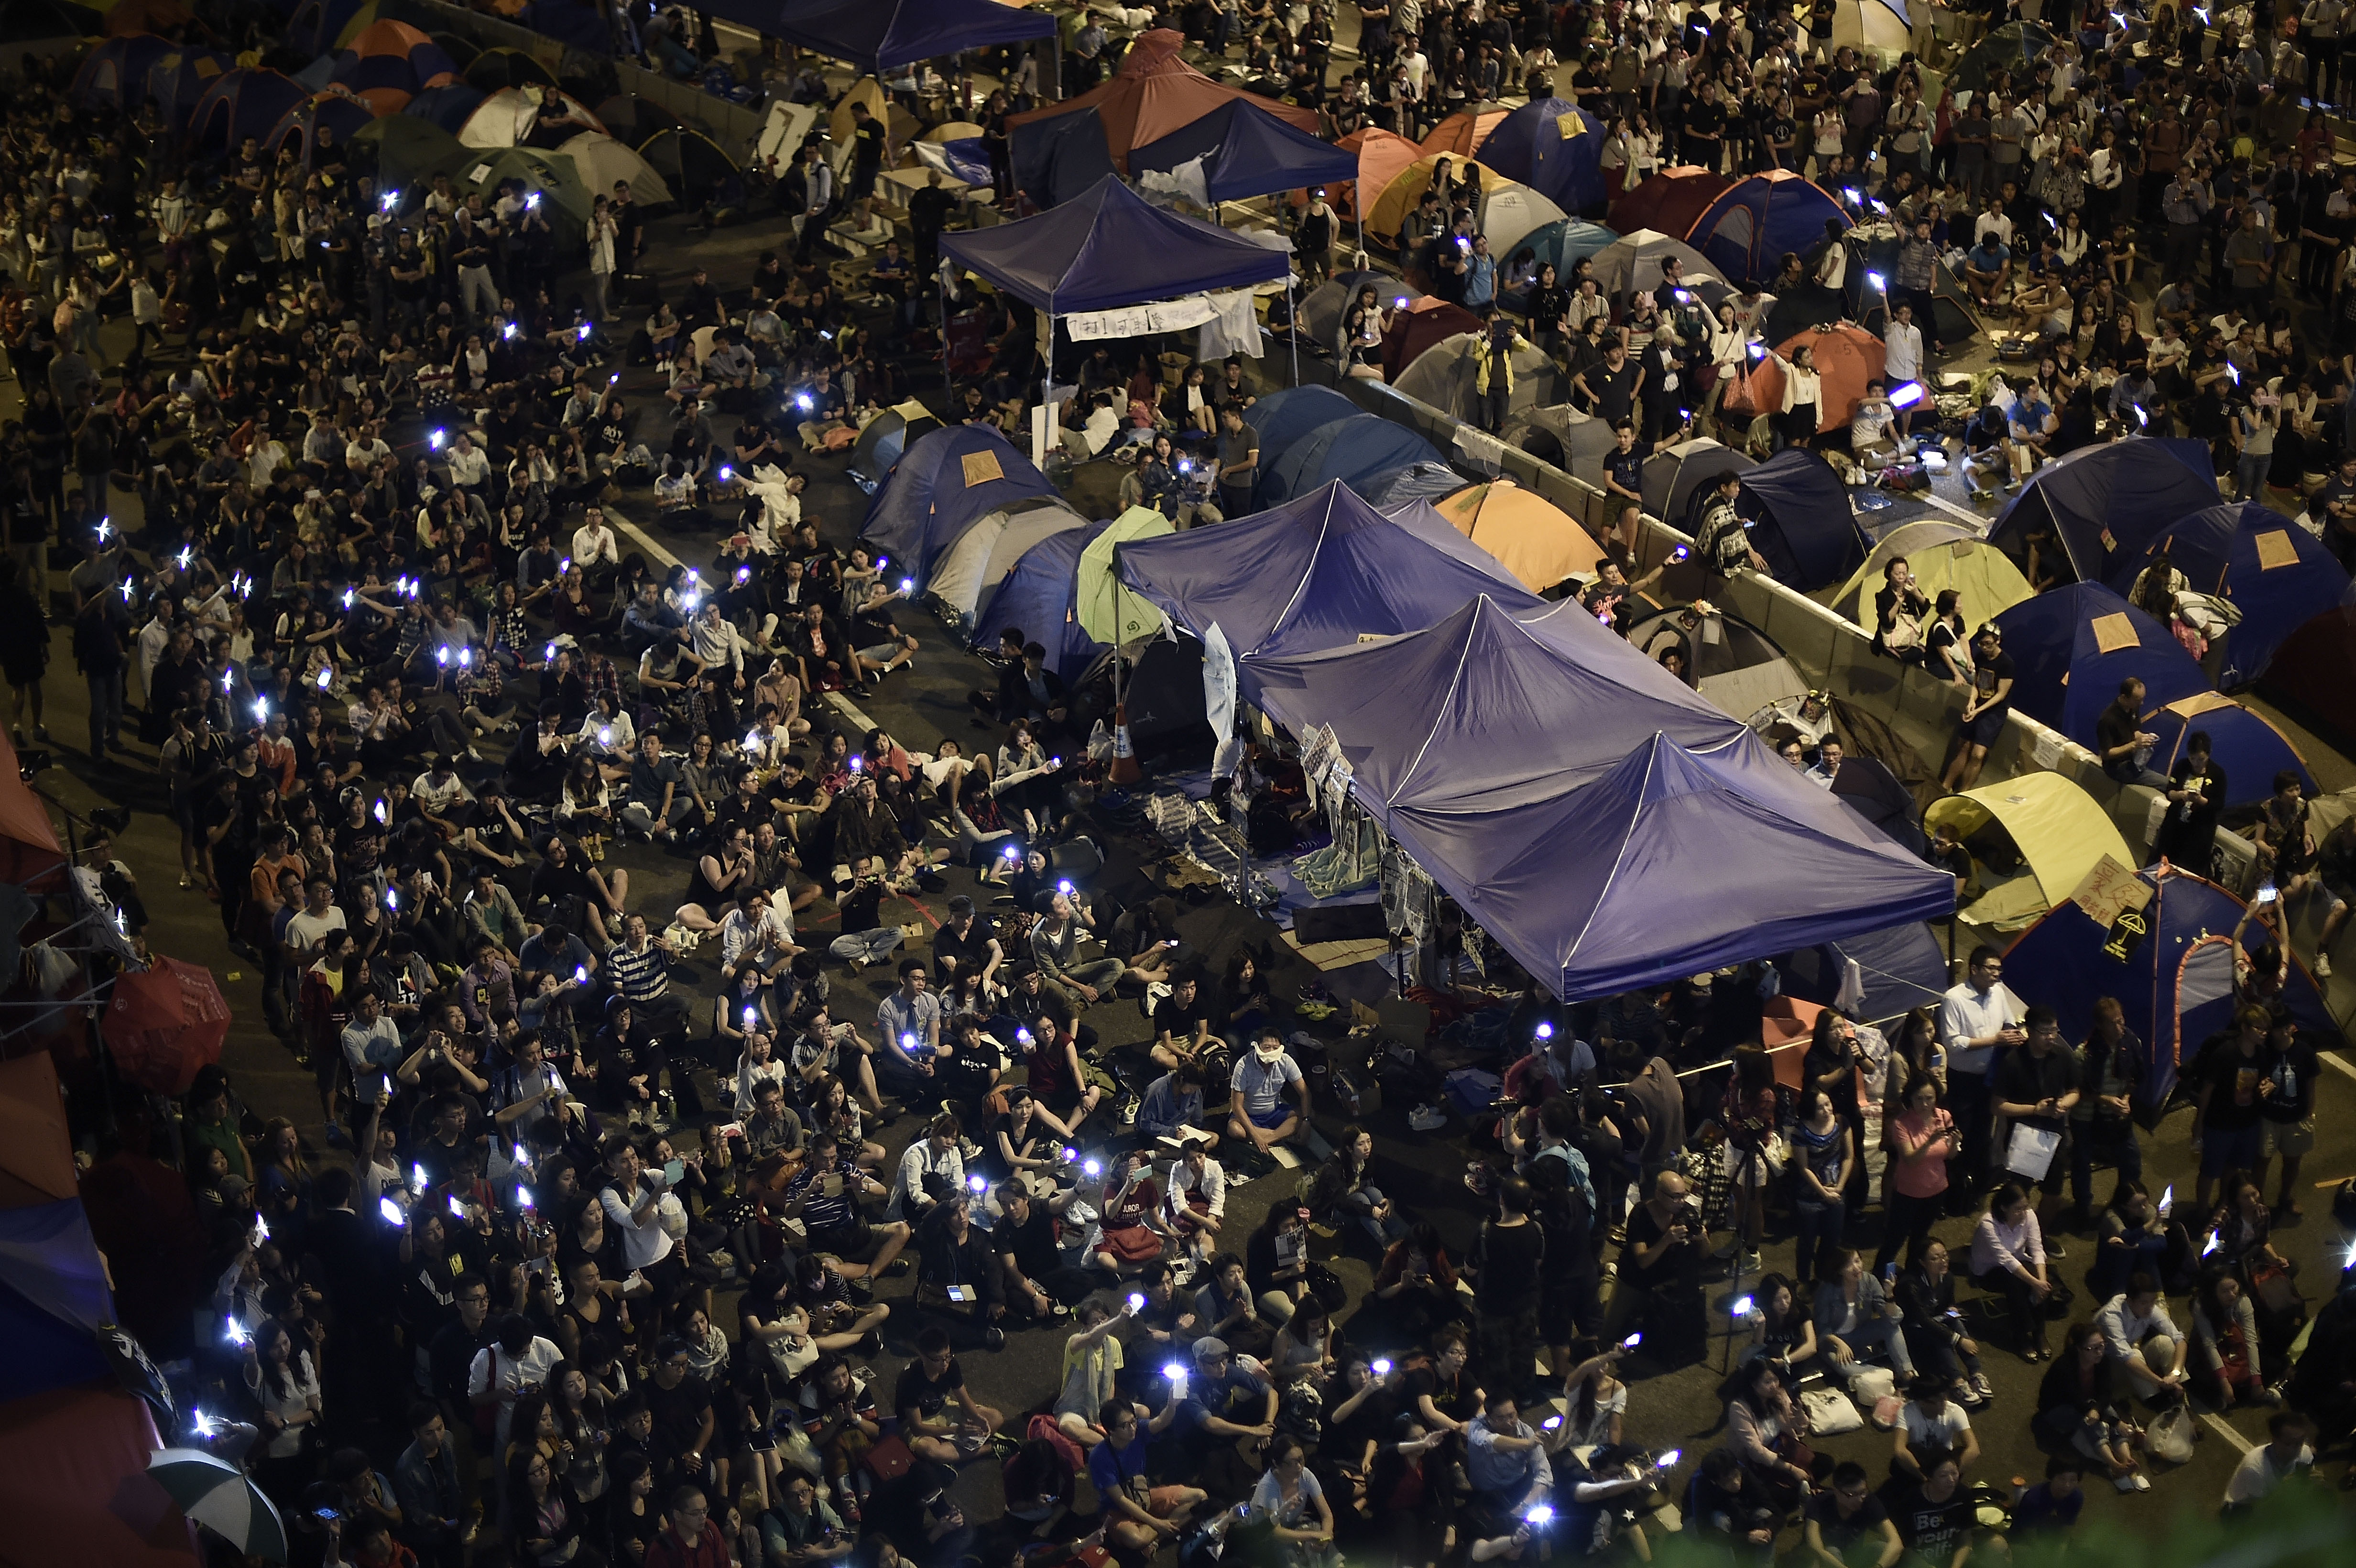 On October 16, 2014 in Hong Kong, pro-democracy protesters continue to call for open elections and the resignation of Hong Kong's Chief Executive Leung Chun-ying.